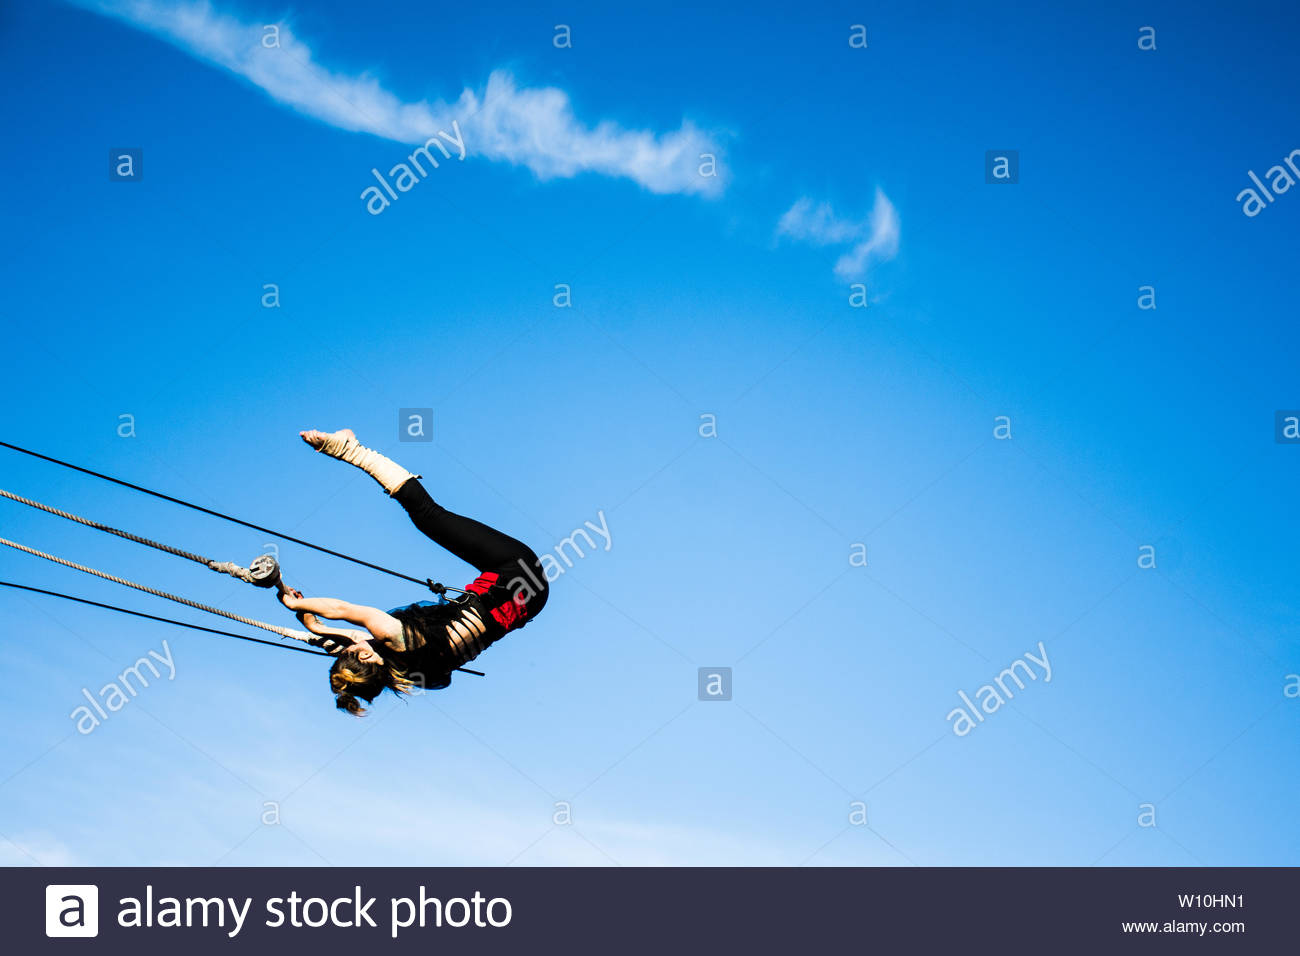 acrobat in the sky - Stock Image